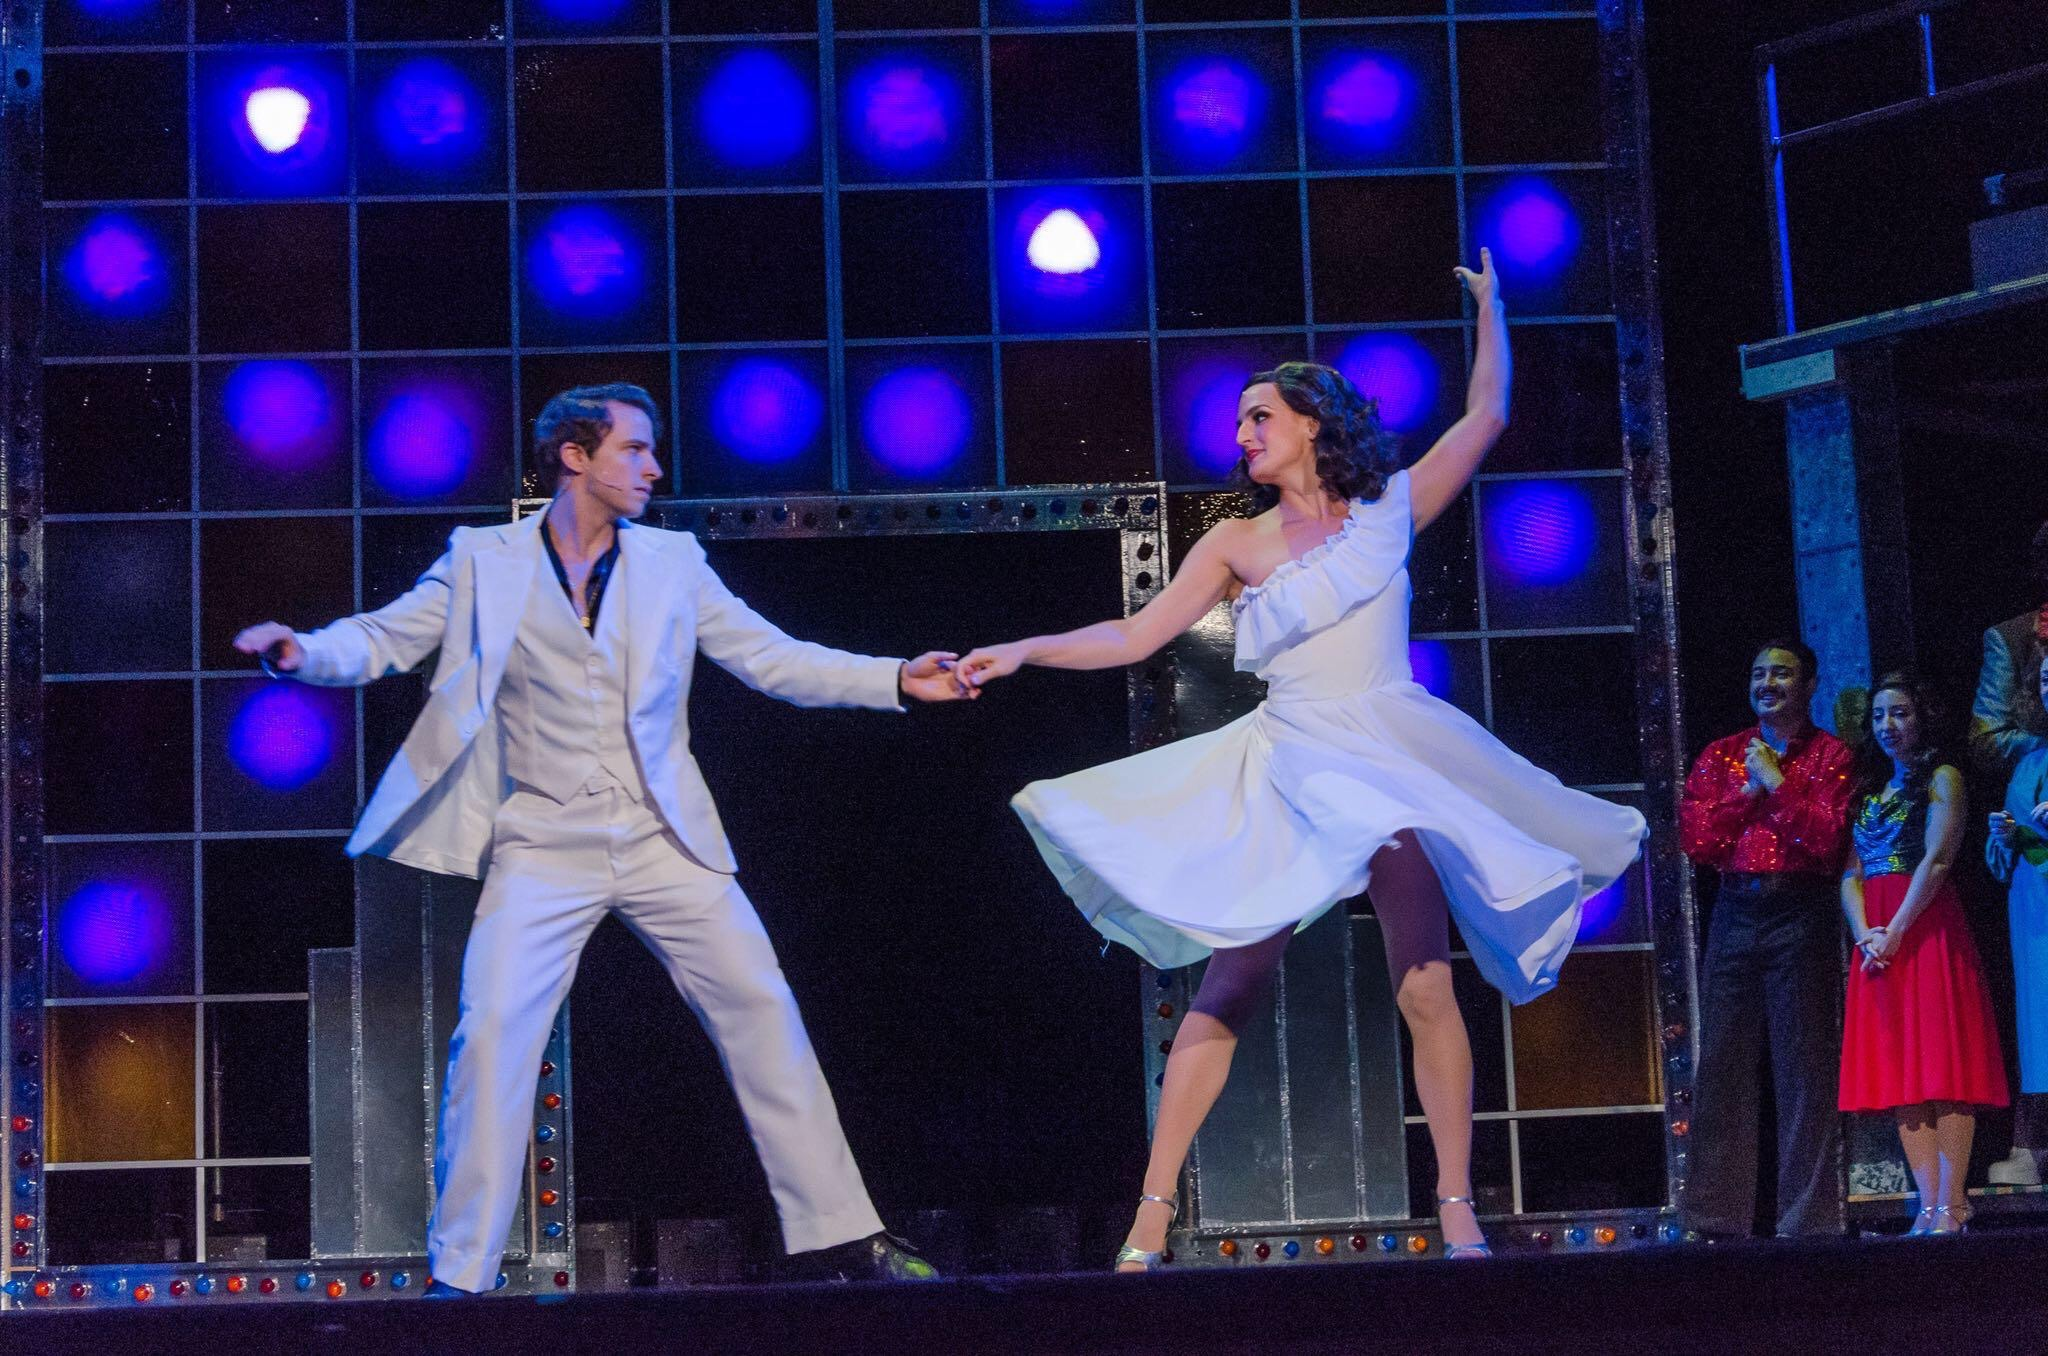 Saturday Night Fever, Lisa Karlin as Stephanie